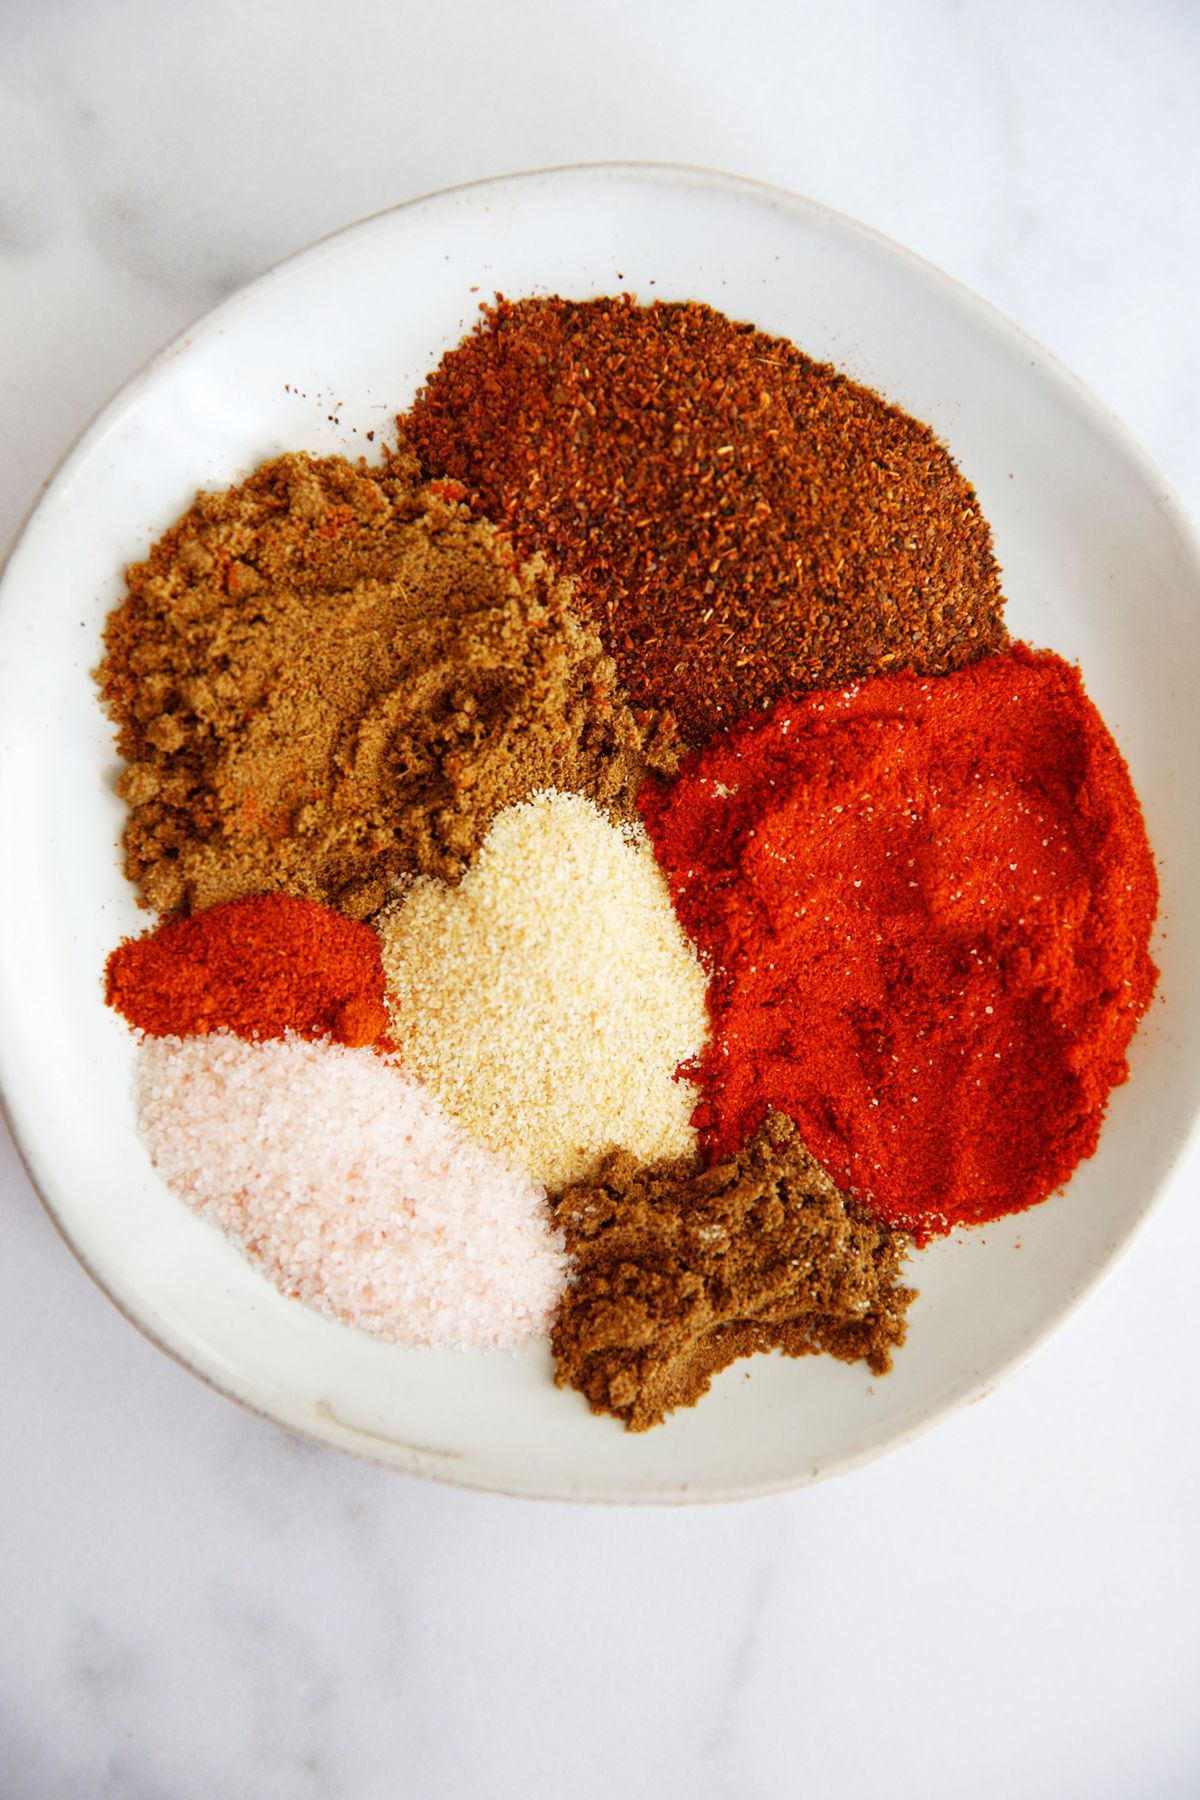 If you've got 5 minutes, than you can put together this easy homemade taco seasoning recipe and always have some for taco Tuesday, or any night of the week! #maketacoseasoning